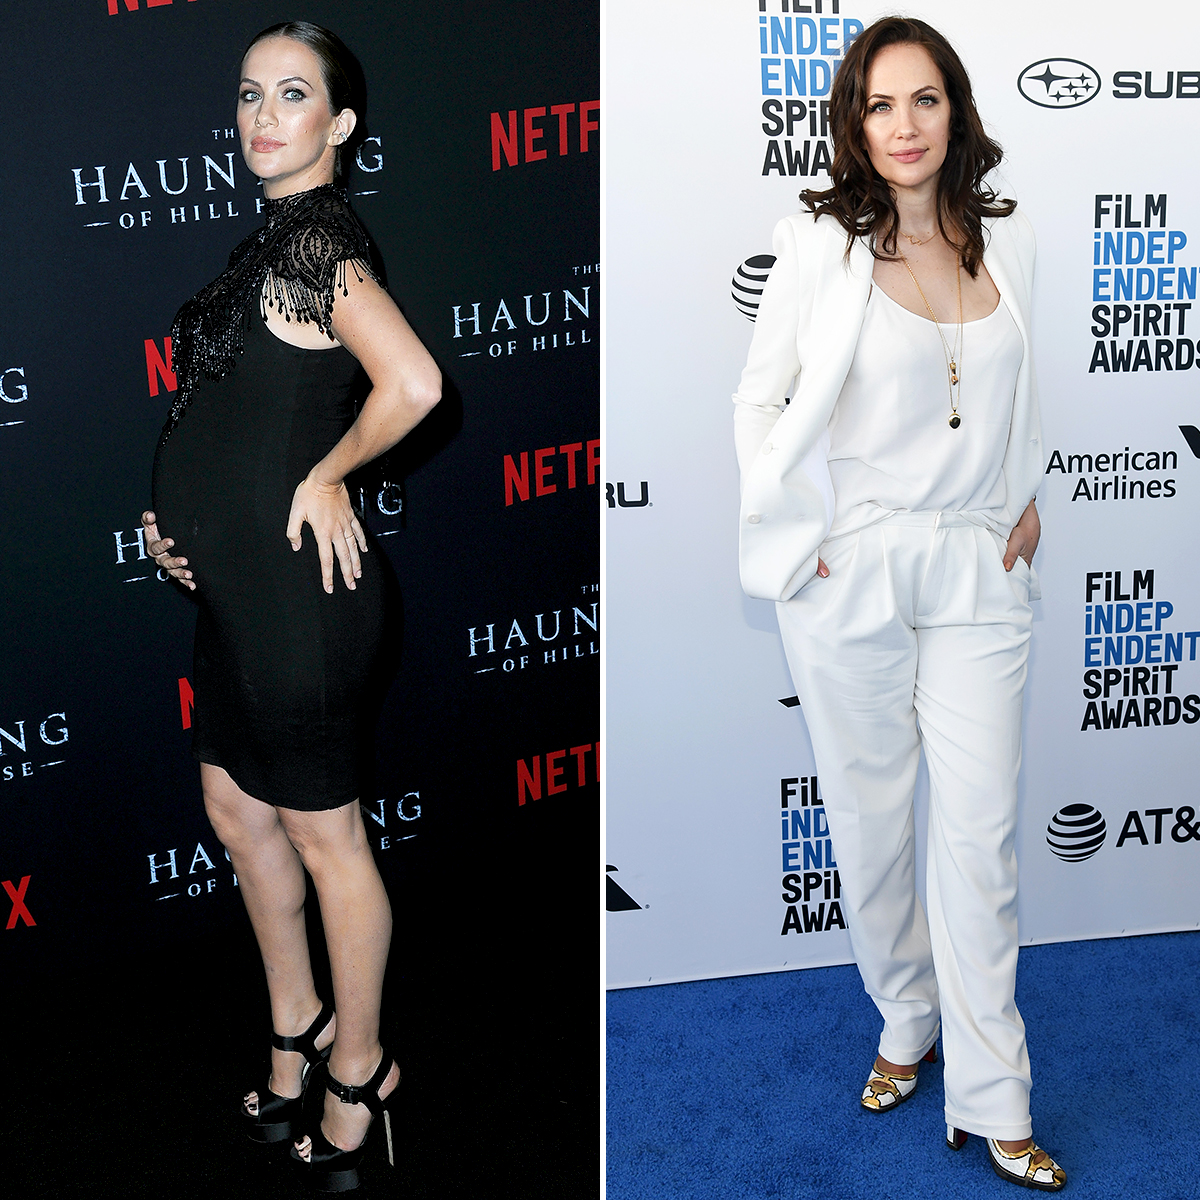 Kate-Siegel-post-baby-body - The Haunting of Hill House actress, 36, welcomed her second baby, daughter Theodora, with husband Mike Flanagan in December 2018. By the time the star showed up in a sexy white pantsuit at the Film Independent Spirit Awards on February 23, 2019, she was already looking trim!